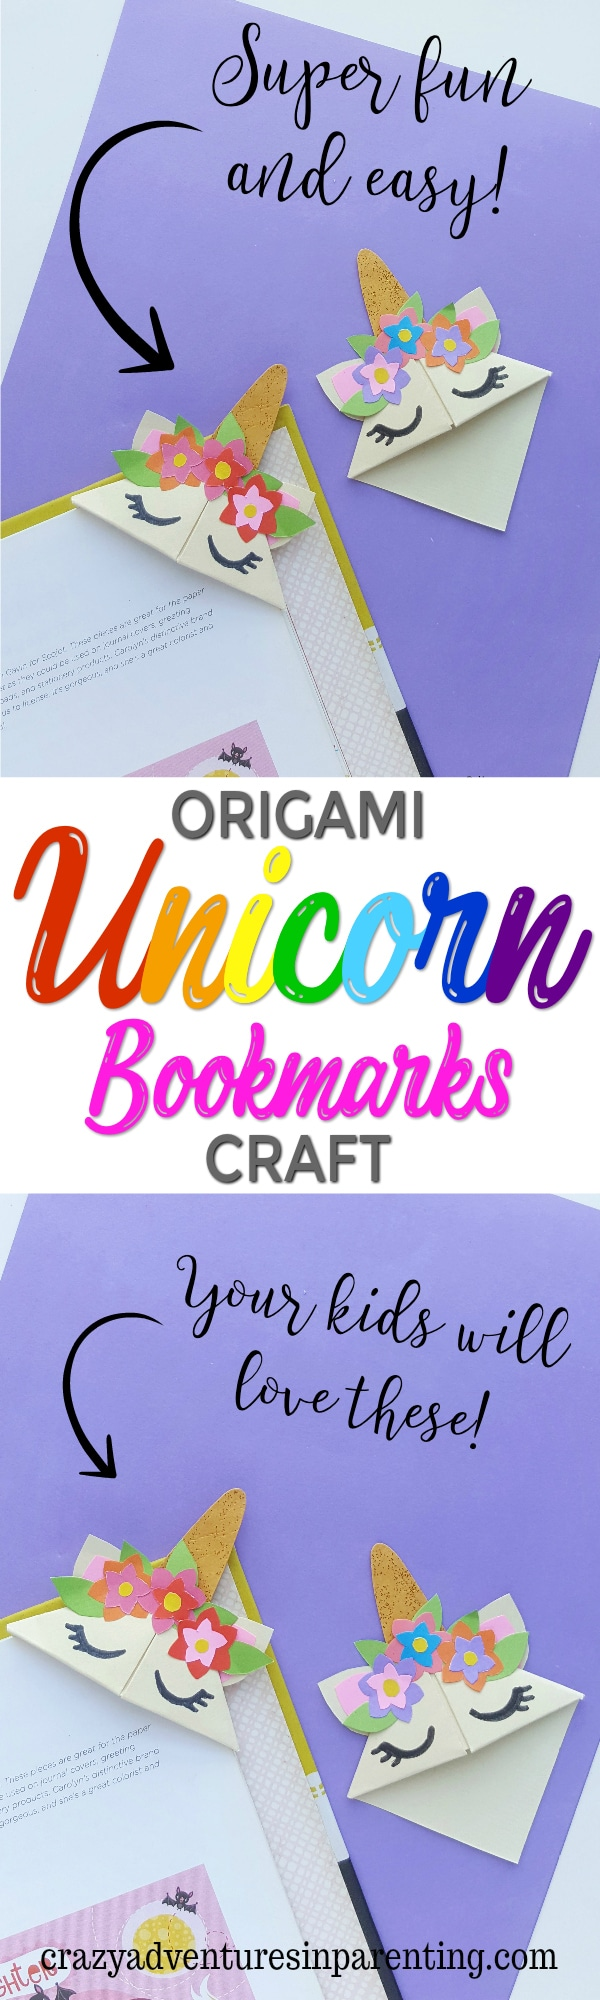 Easy Origami Unicorn Corner Bookmark Craft